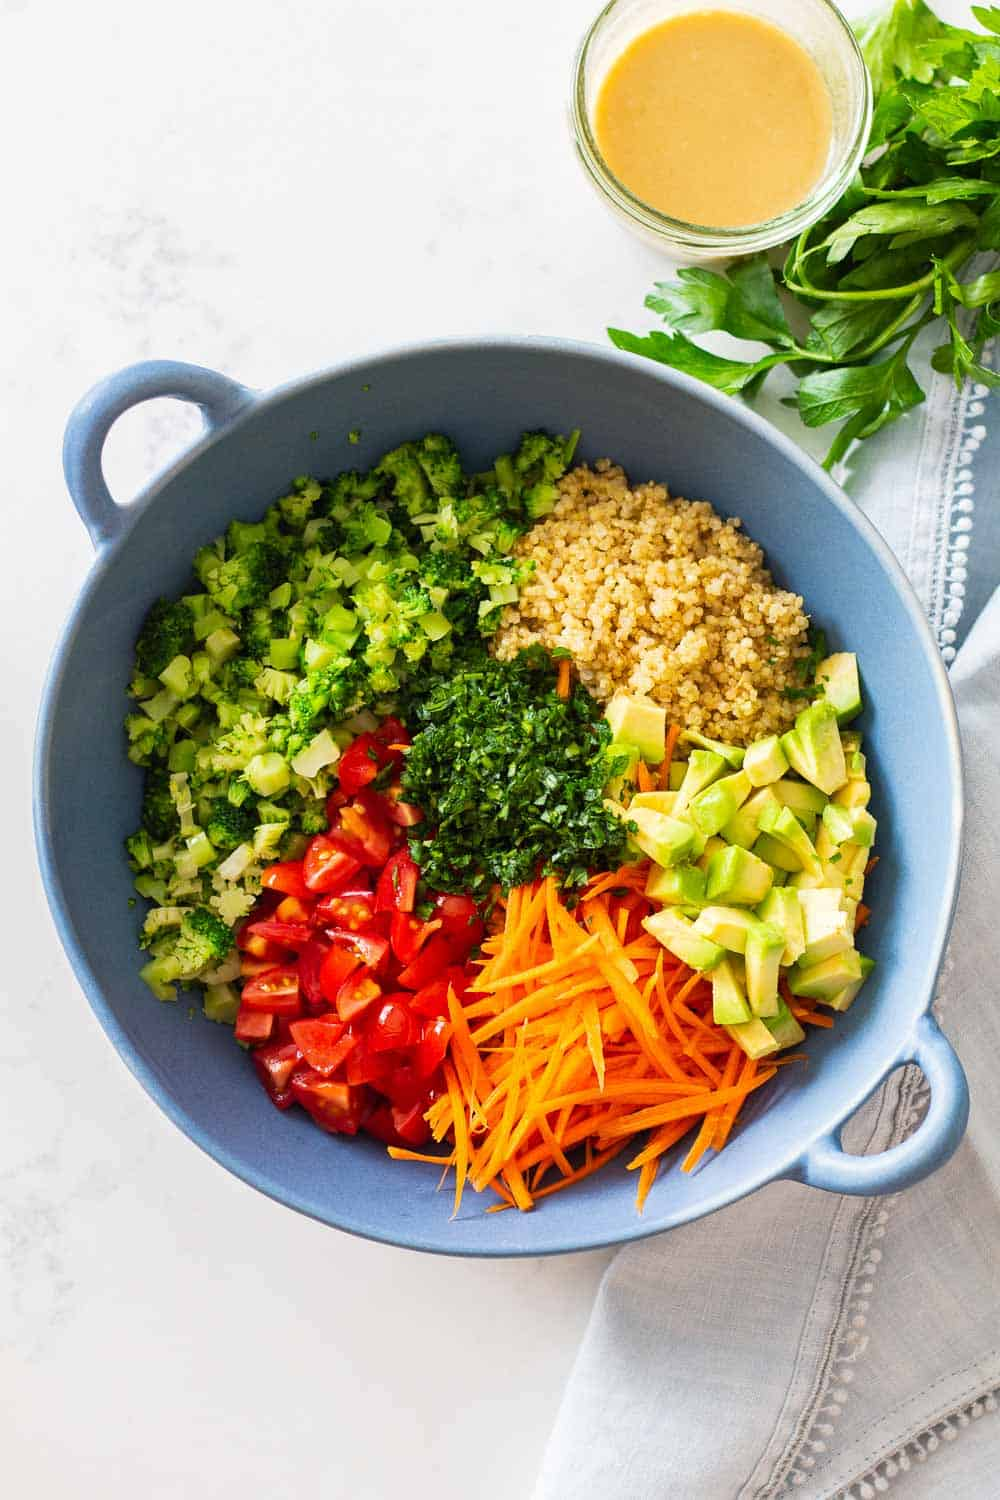 Quinoa salad with broccoli, carrot, tomato, avocado, parsley in a blue bowl.